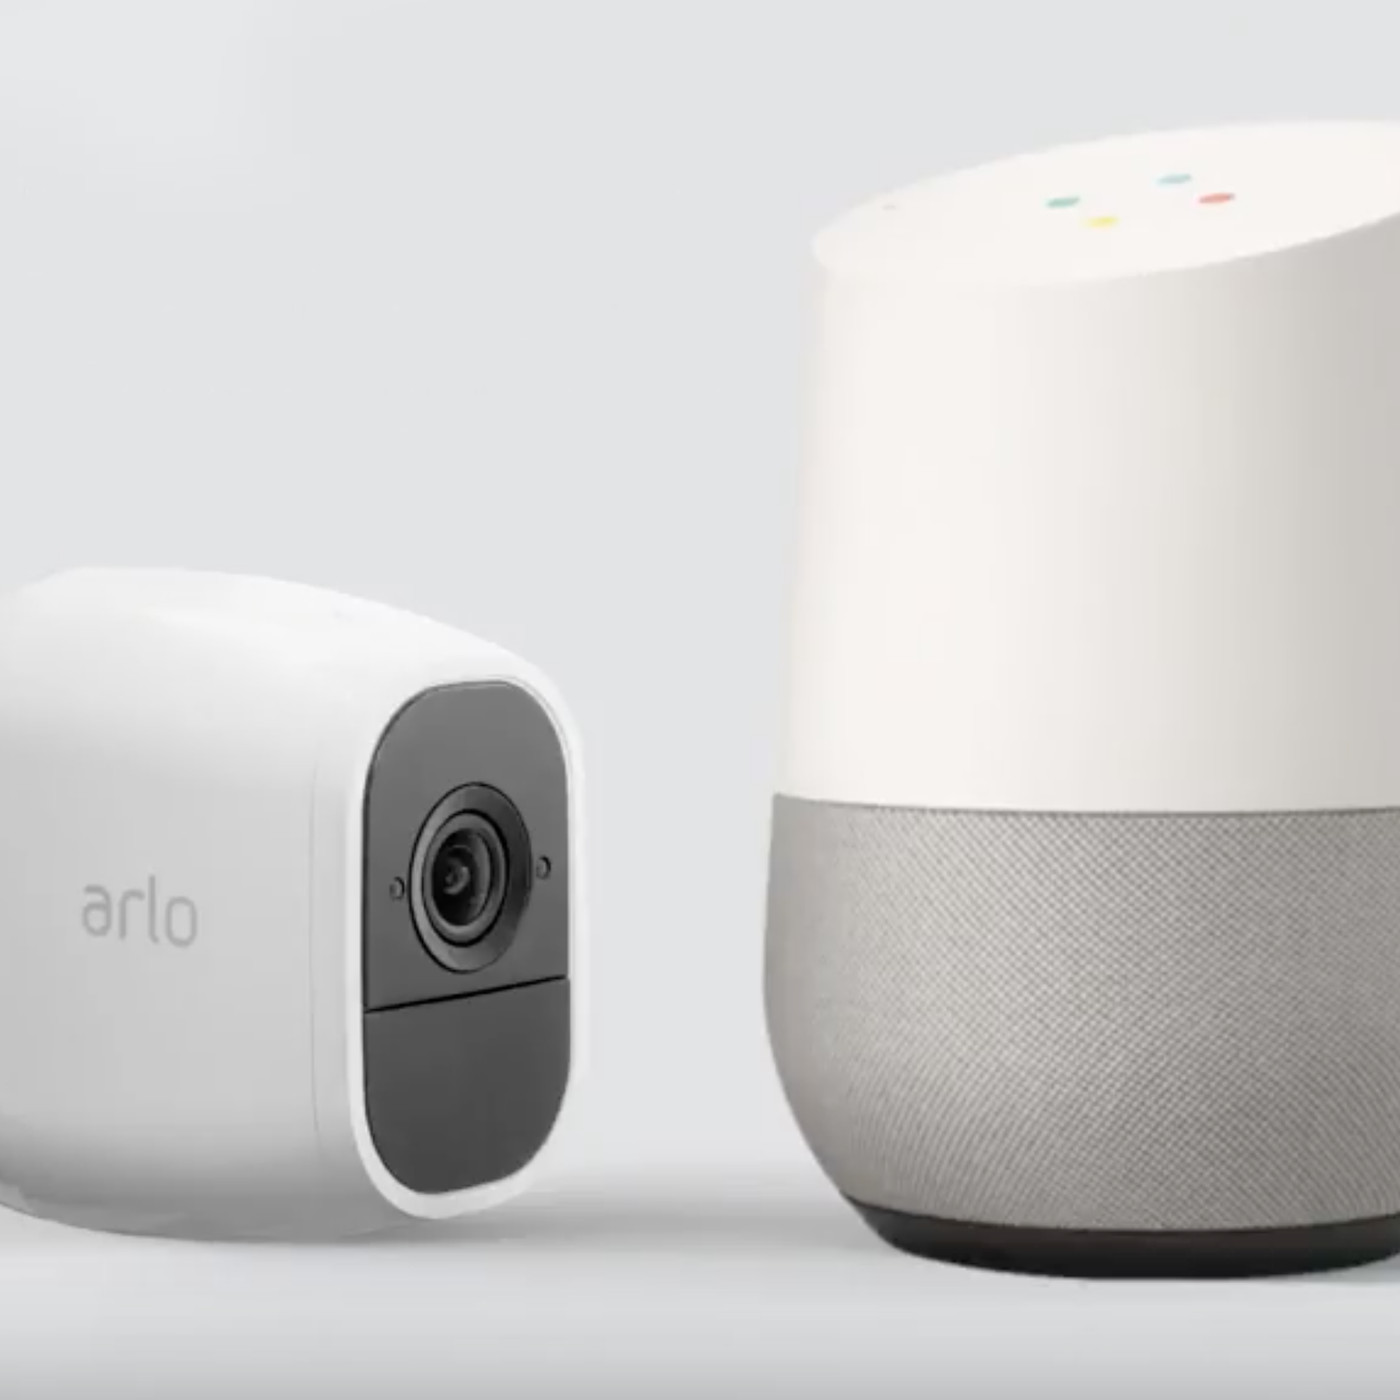 Now you can Chromecast your Arlo camera feeds with Google Assistant